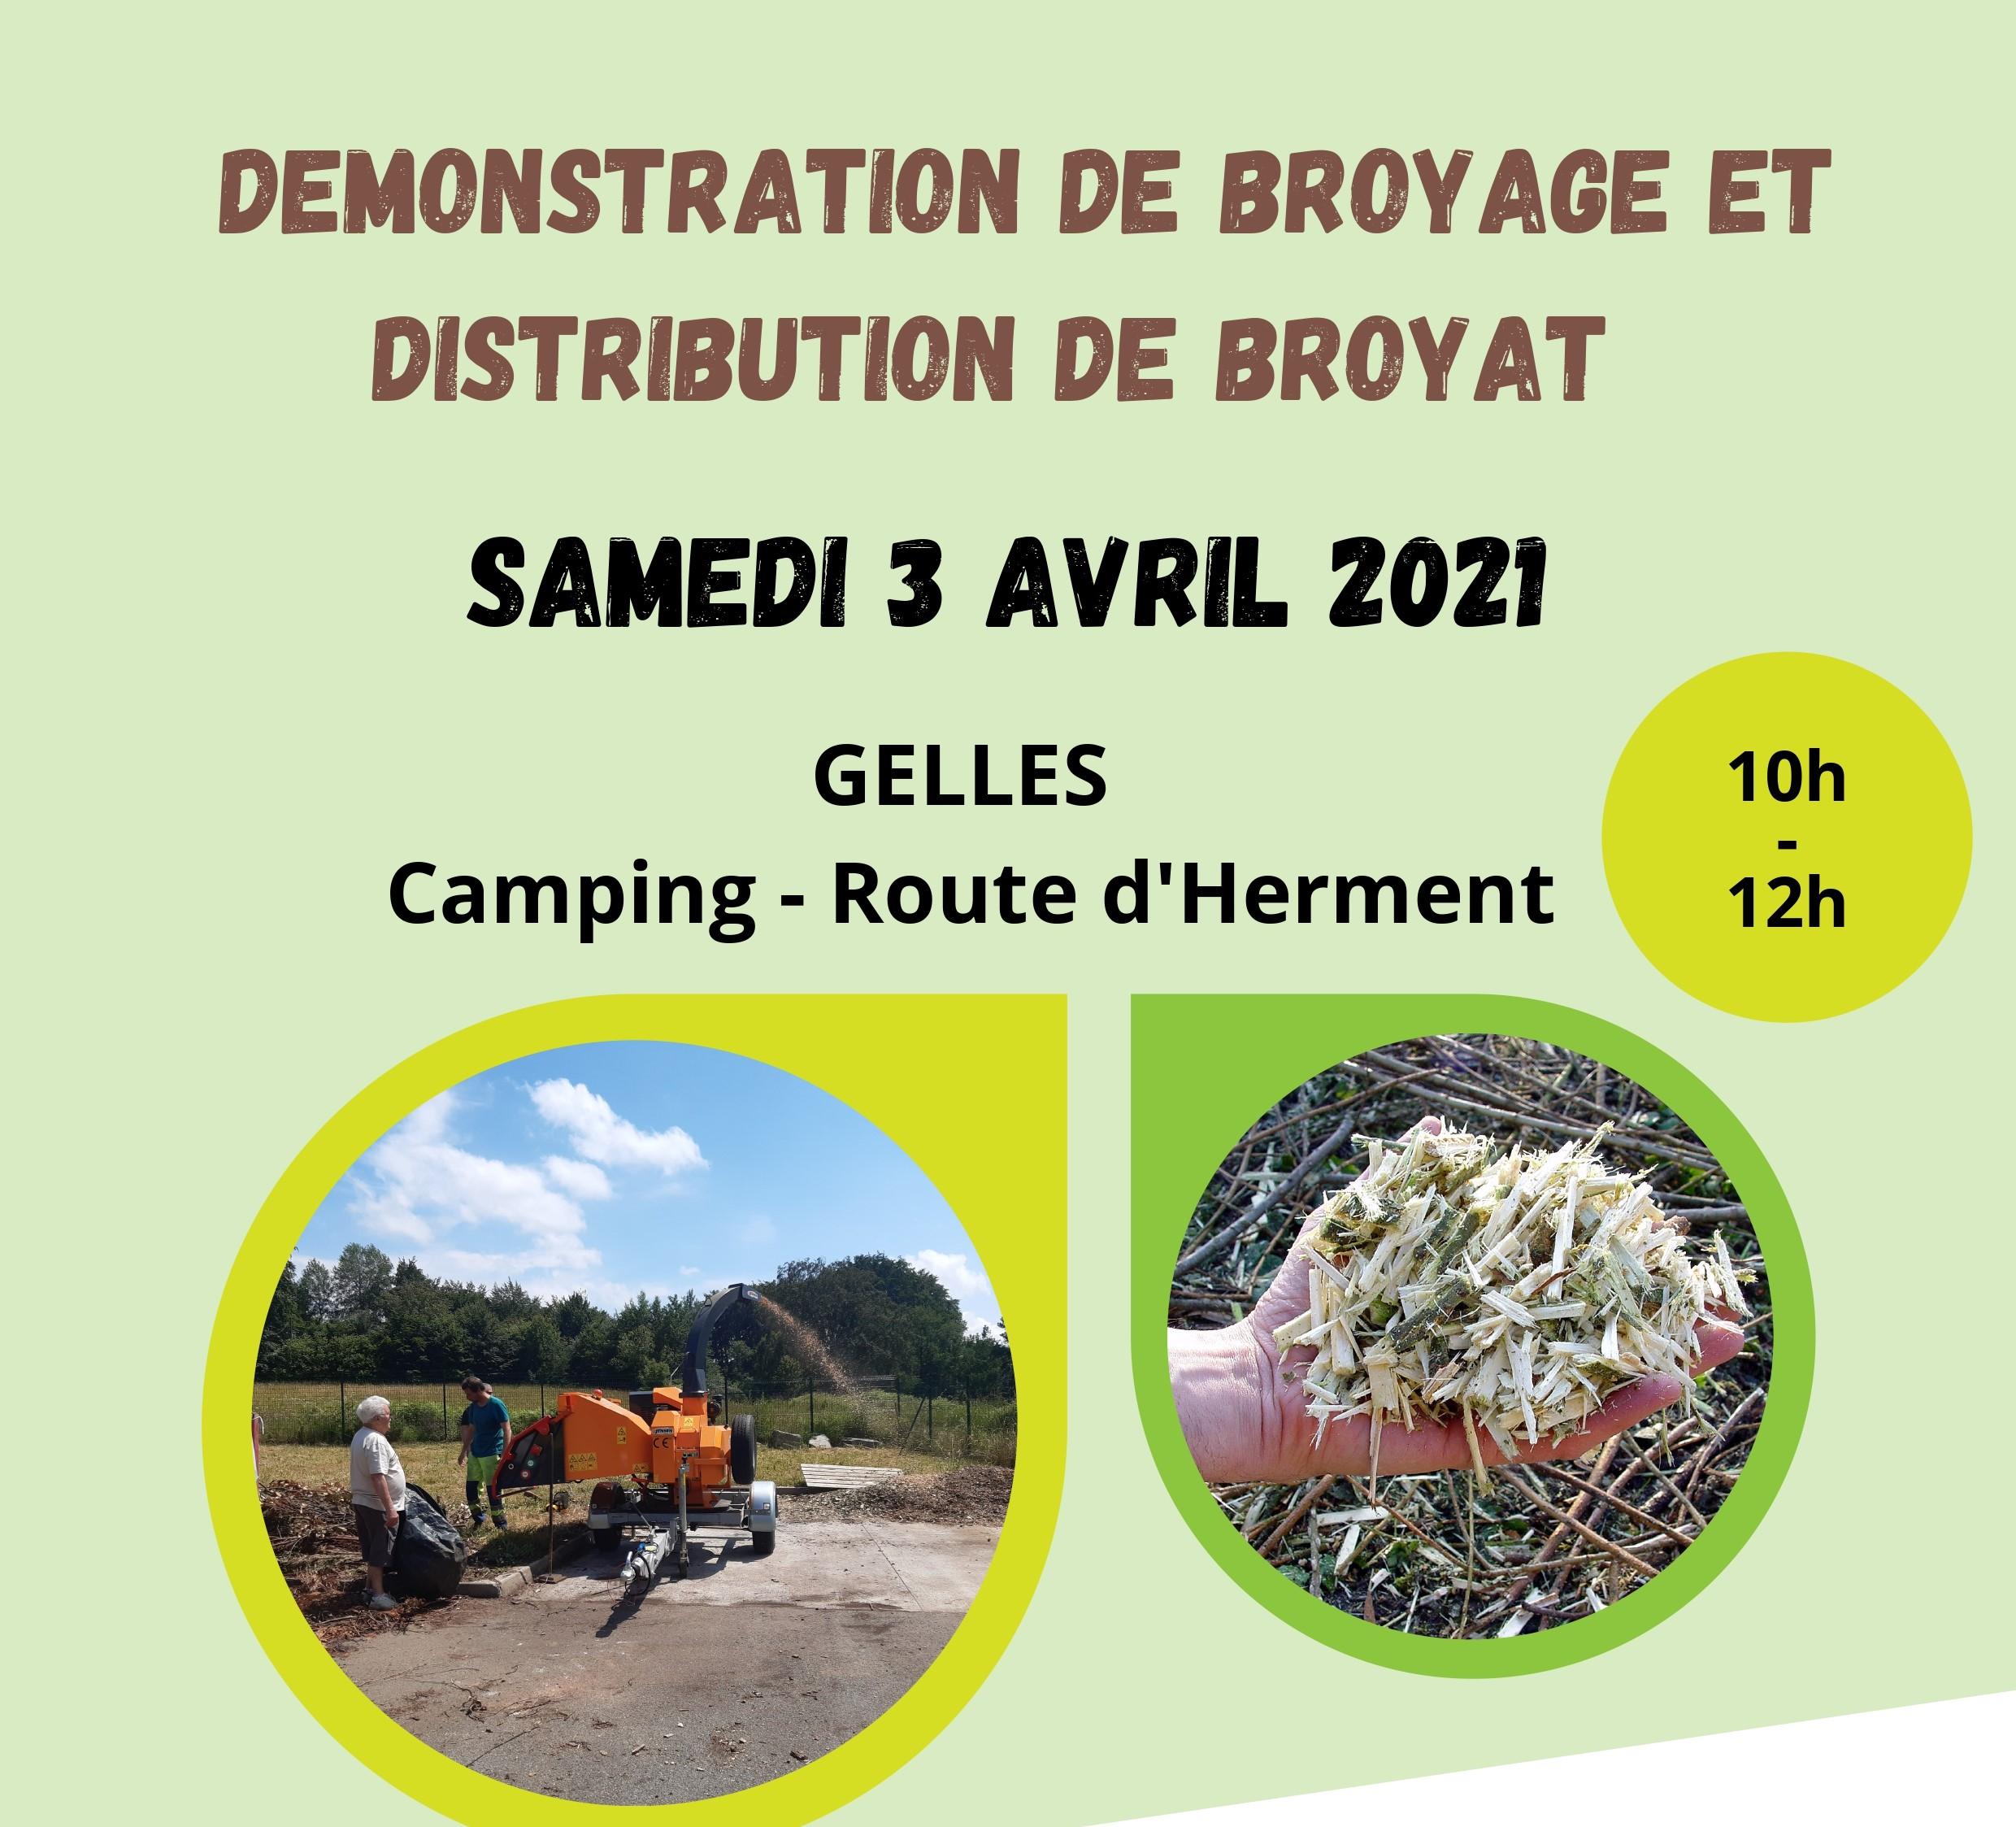 Distribution de broyat